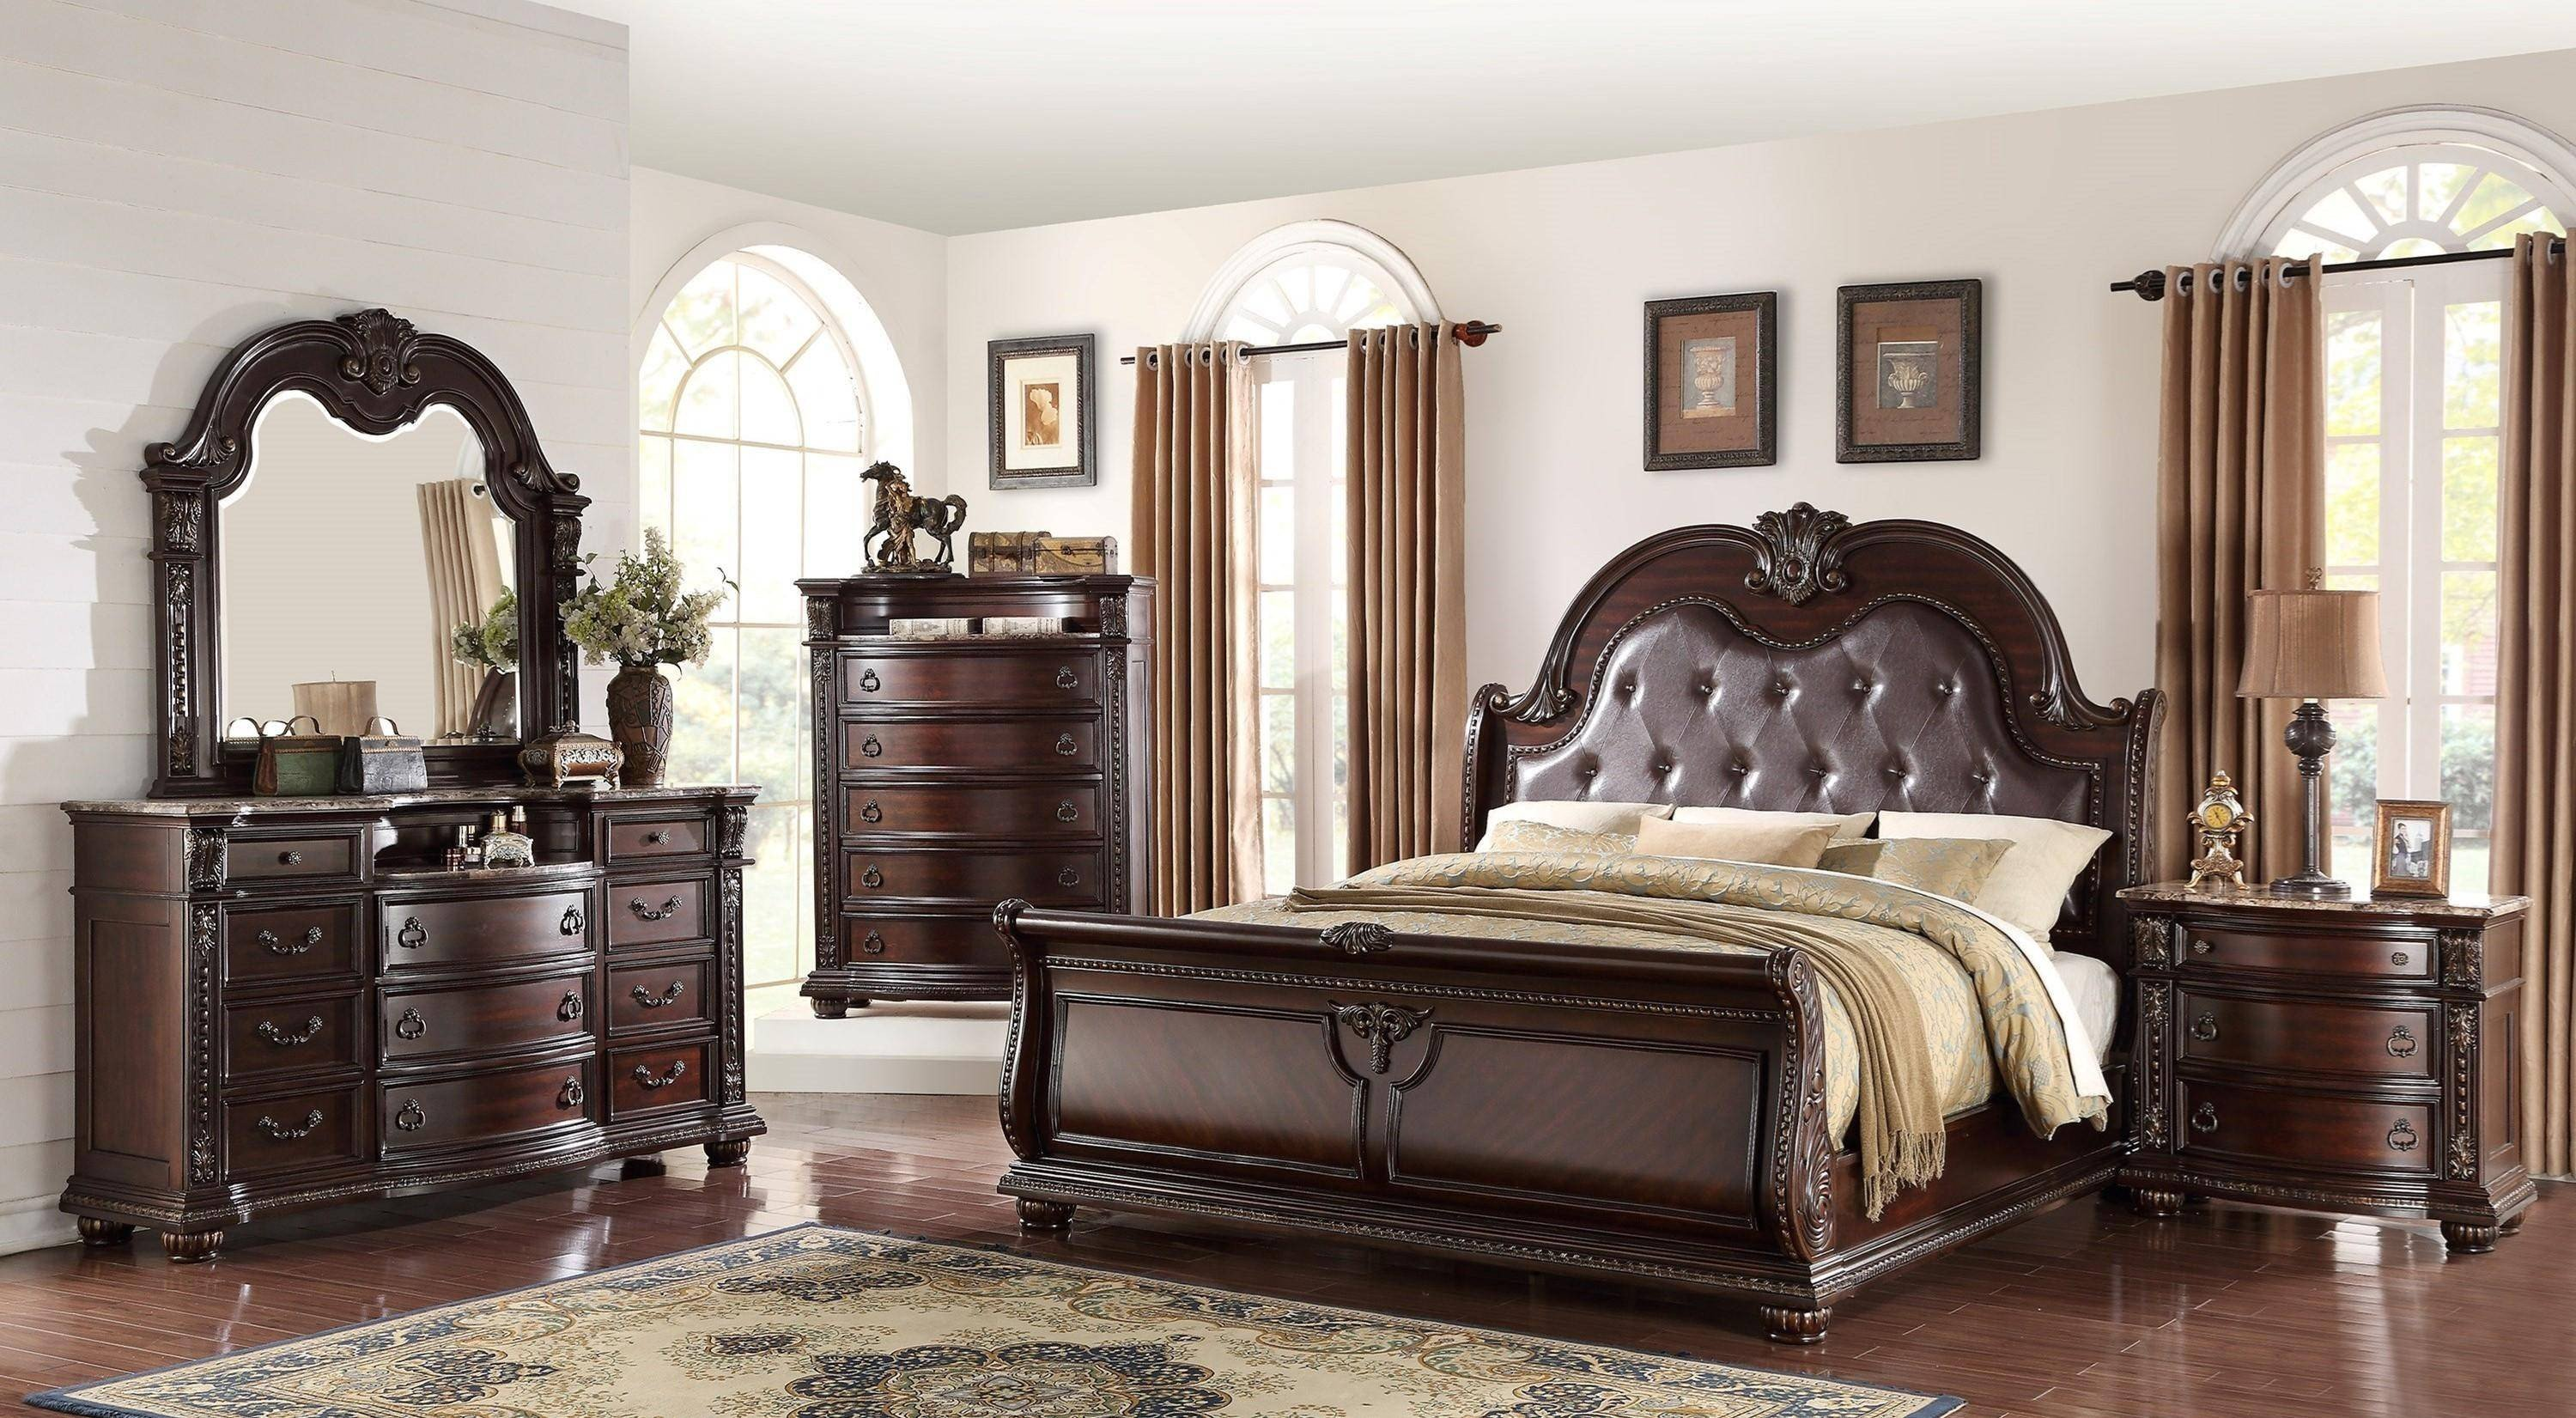 King Bedroom Set for Sale Lovely Crown Mark B1600 Stanley Cherry Finish solid Wood King